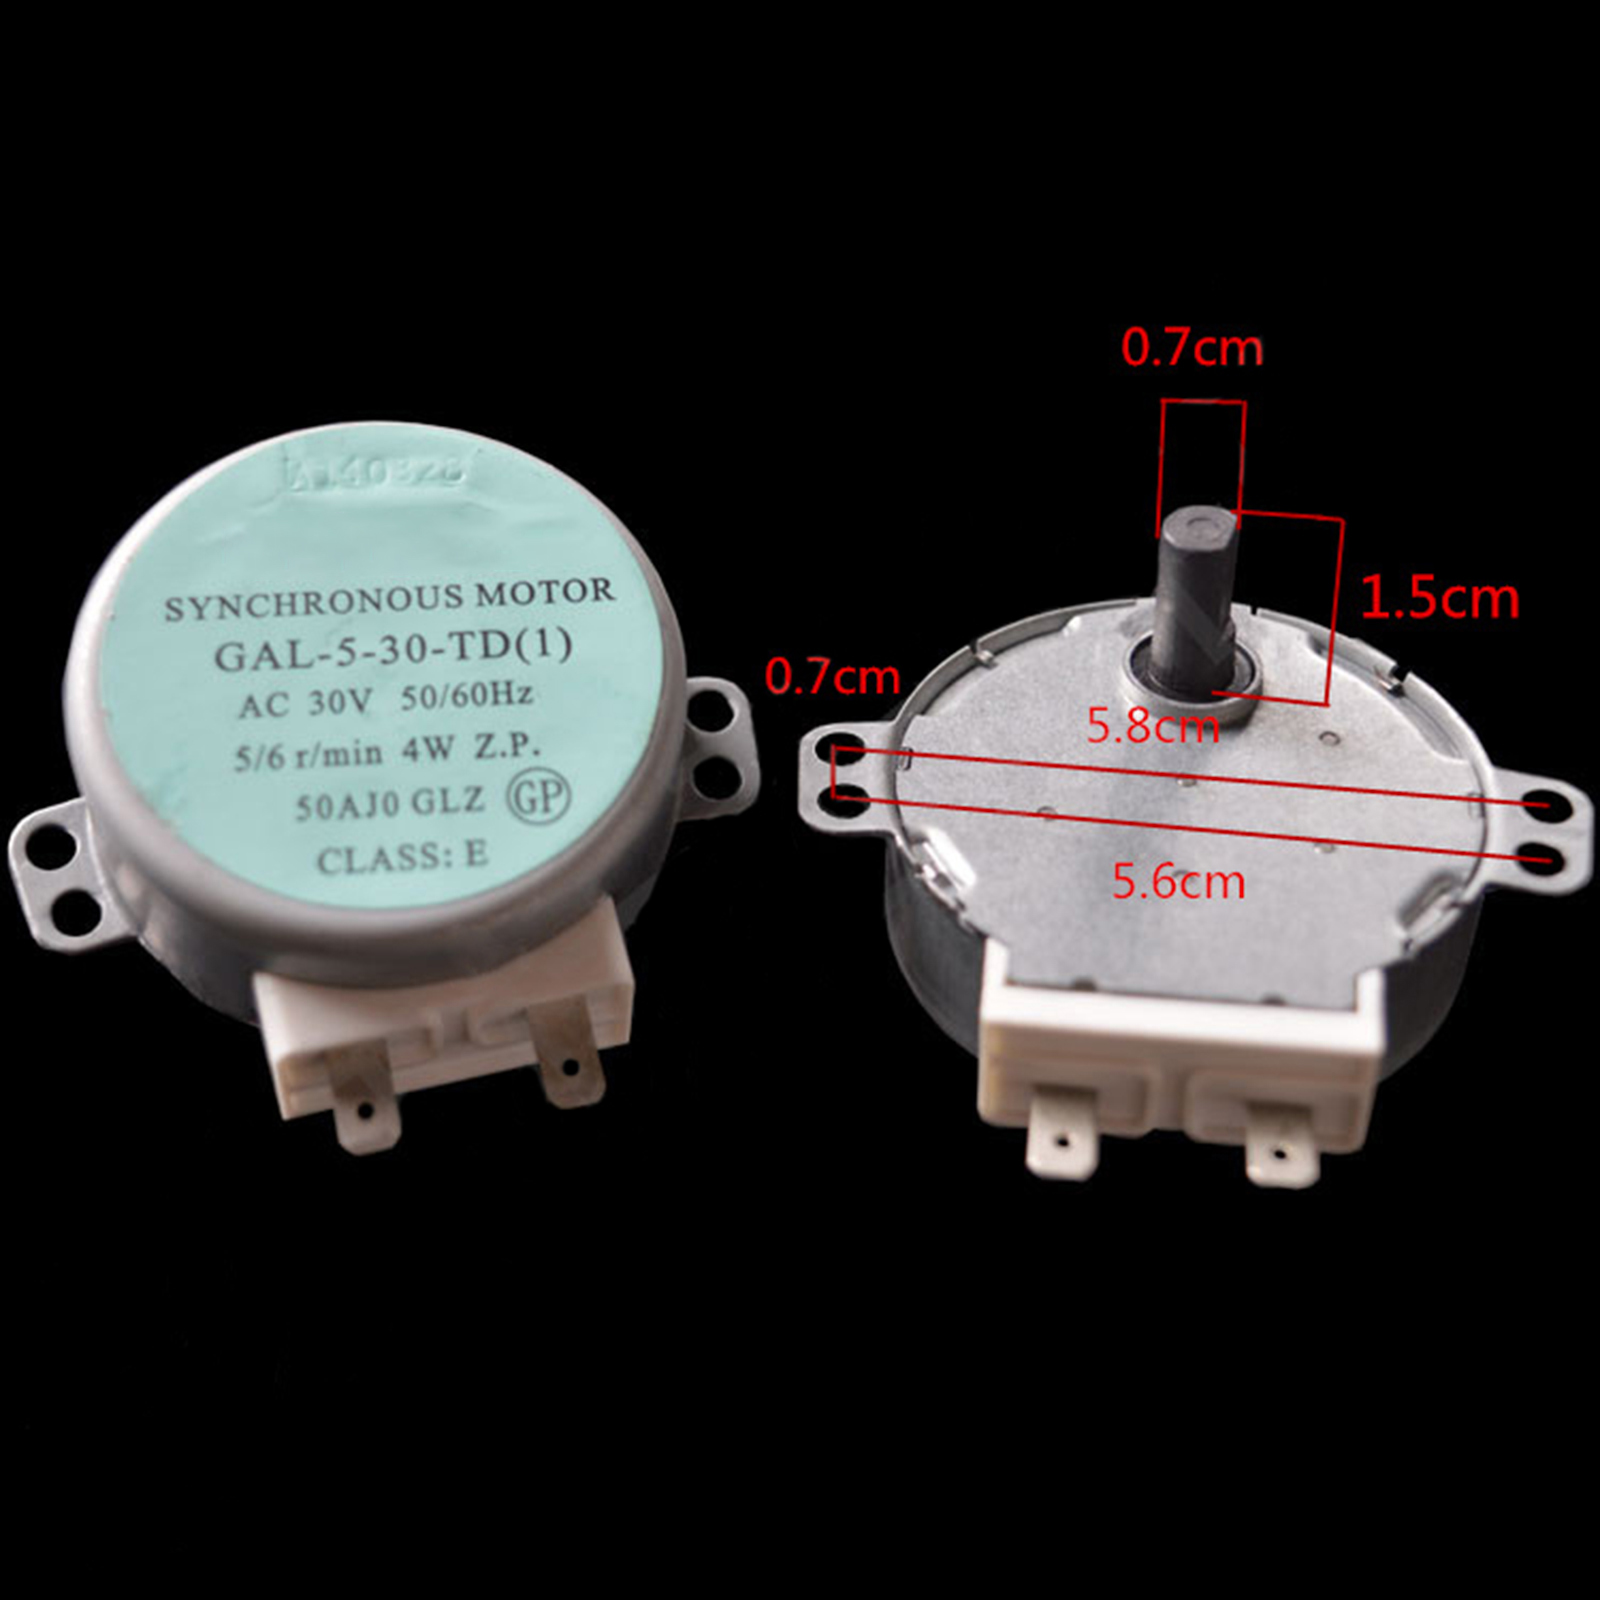 1PC Turntable Motor Synchronous Motor GAL-5-30-TD 30V 4W For GALANZ Microwave Accessories Parts